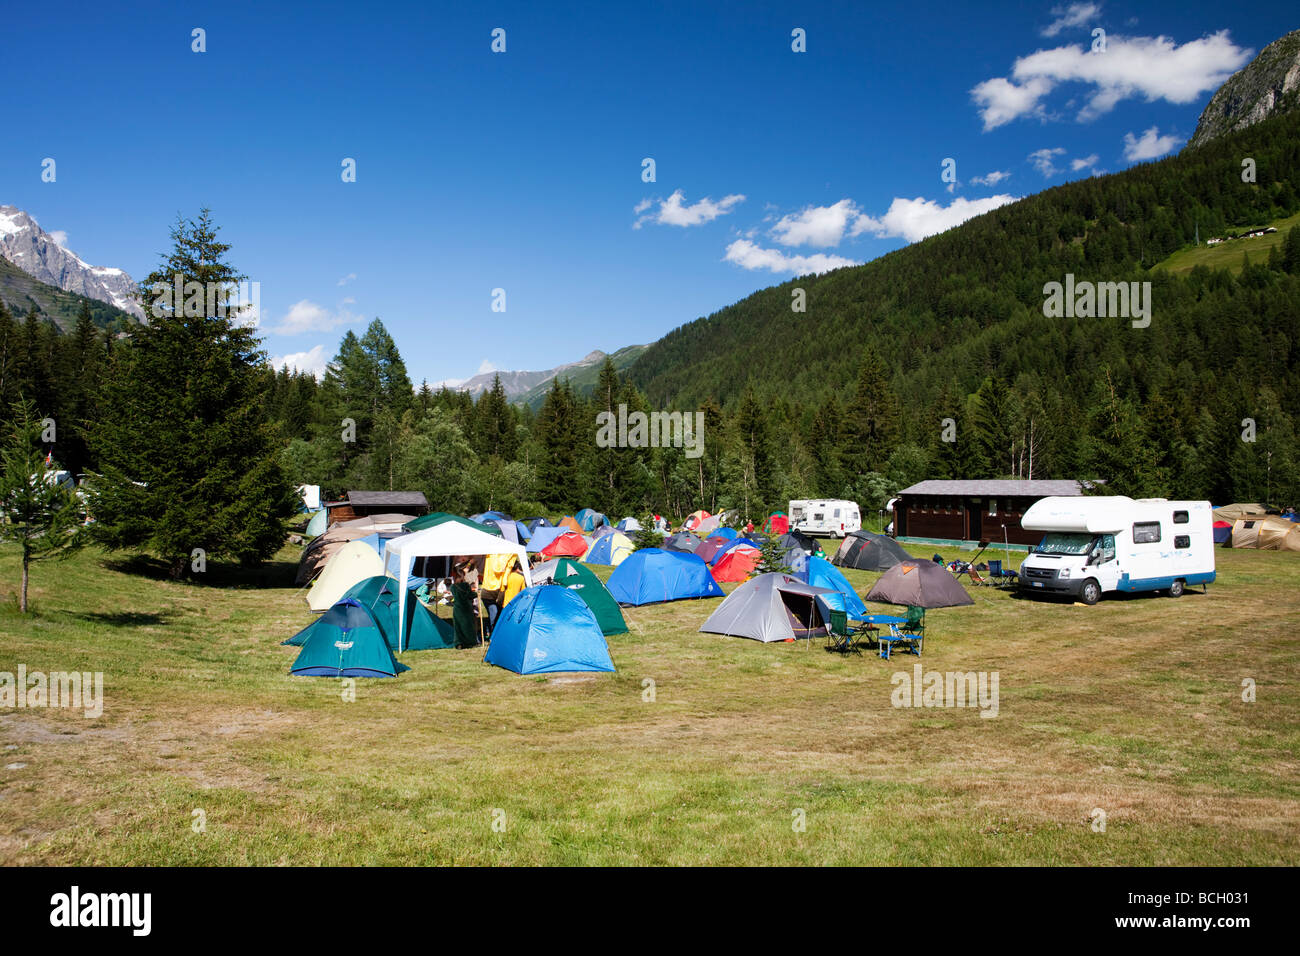 CAMPSITE IN THE ALPS. MONTE BIANCO, VAL VENY, COURMAYEUR, VALLE D'AOSTA, ITALY - Stock Image